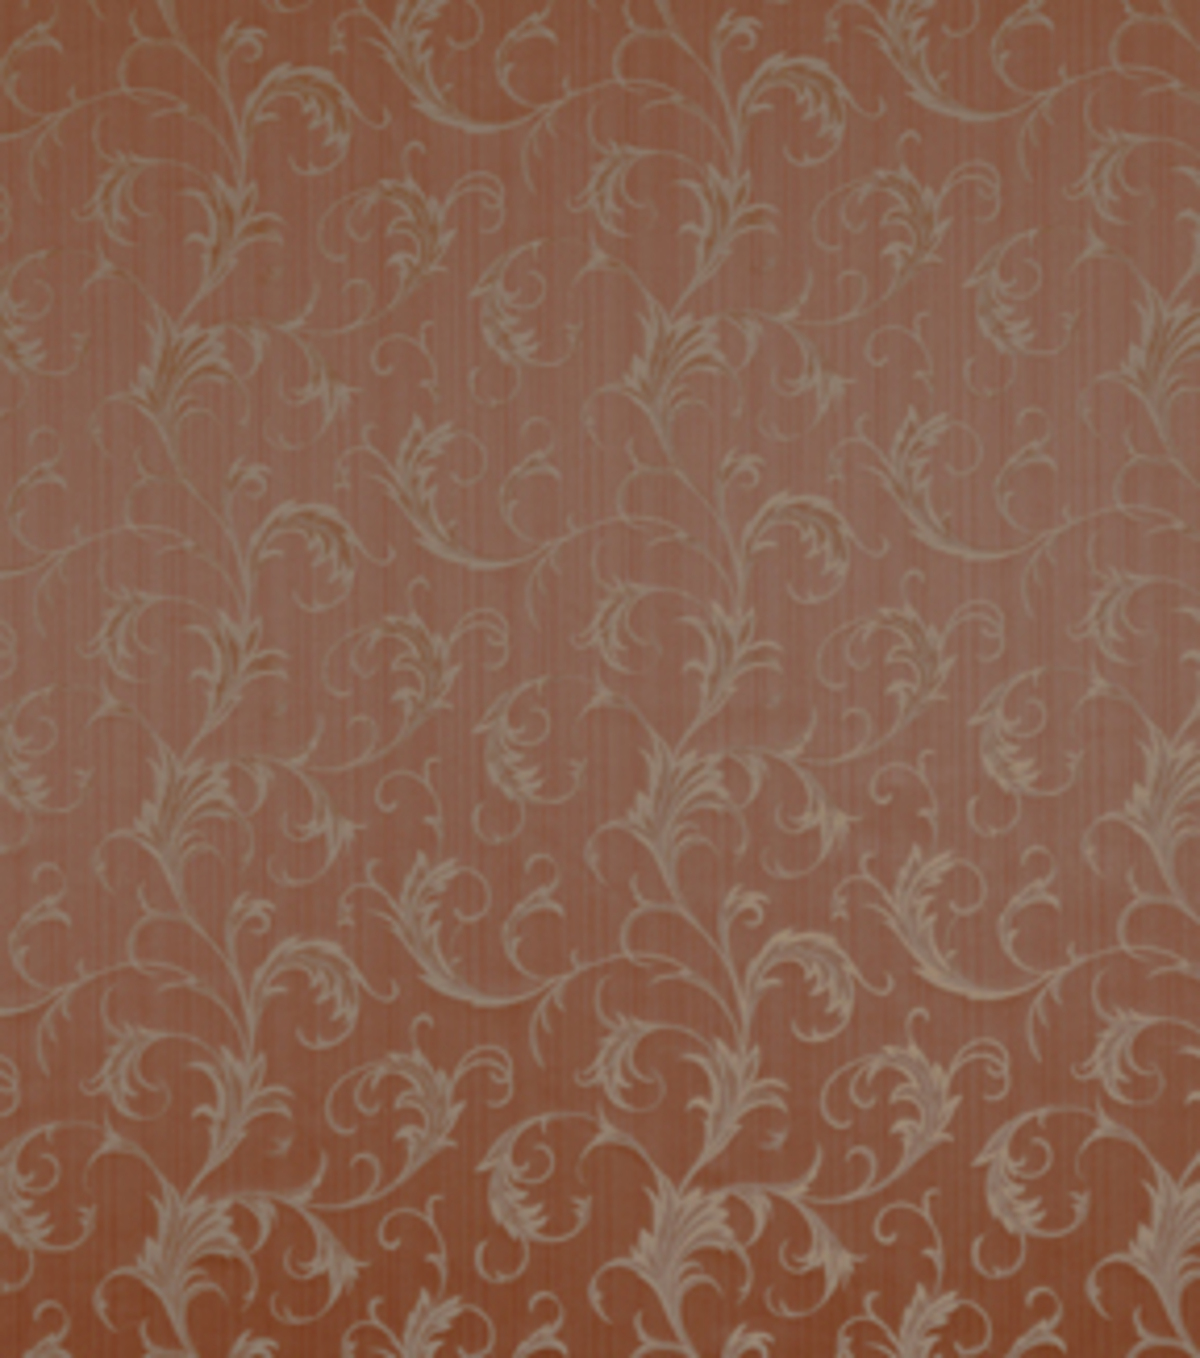 Home Decor 8\u0022x8\u0022 Fabric Swatch-SMC Designs Lampshade Sunset